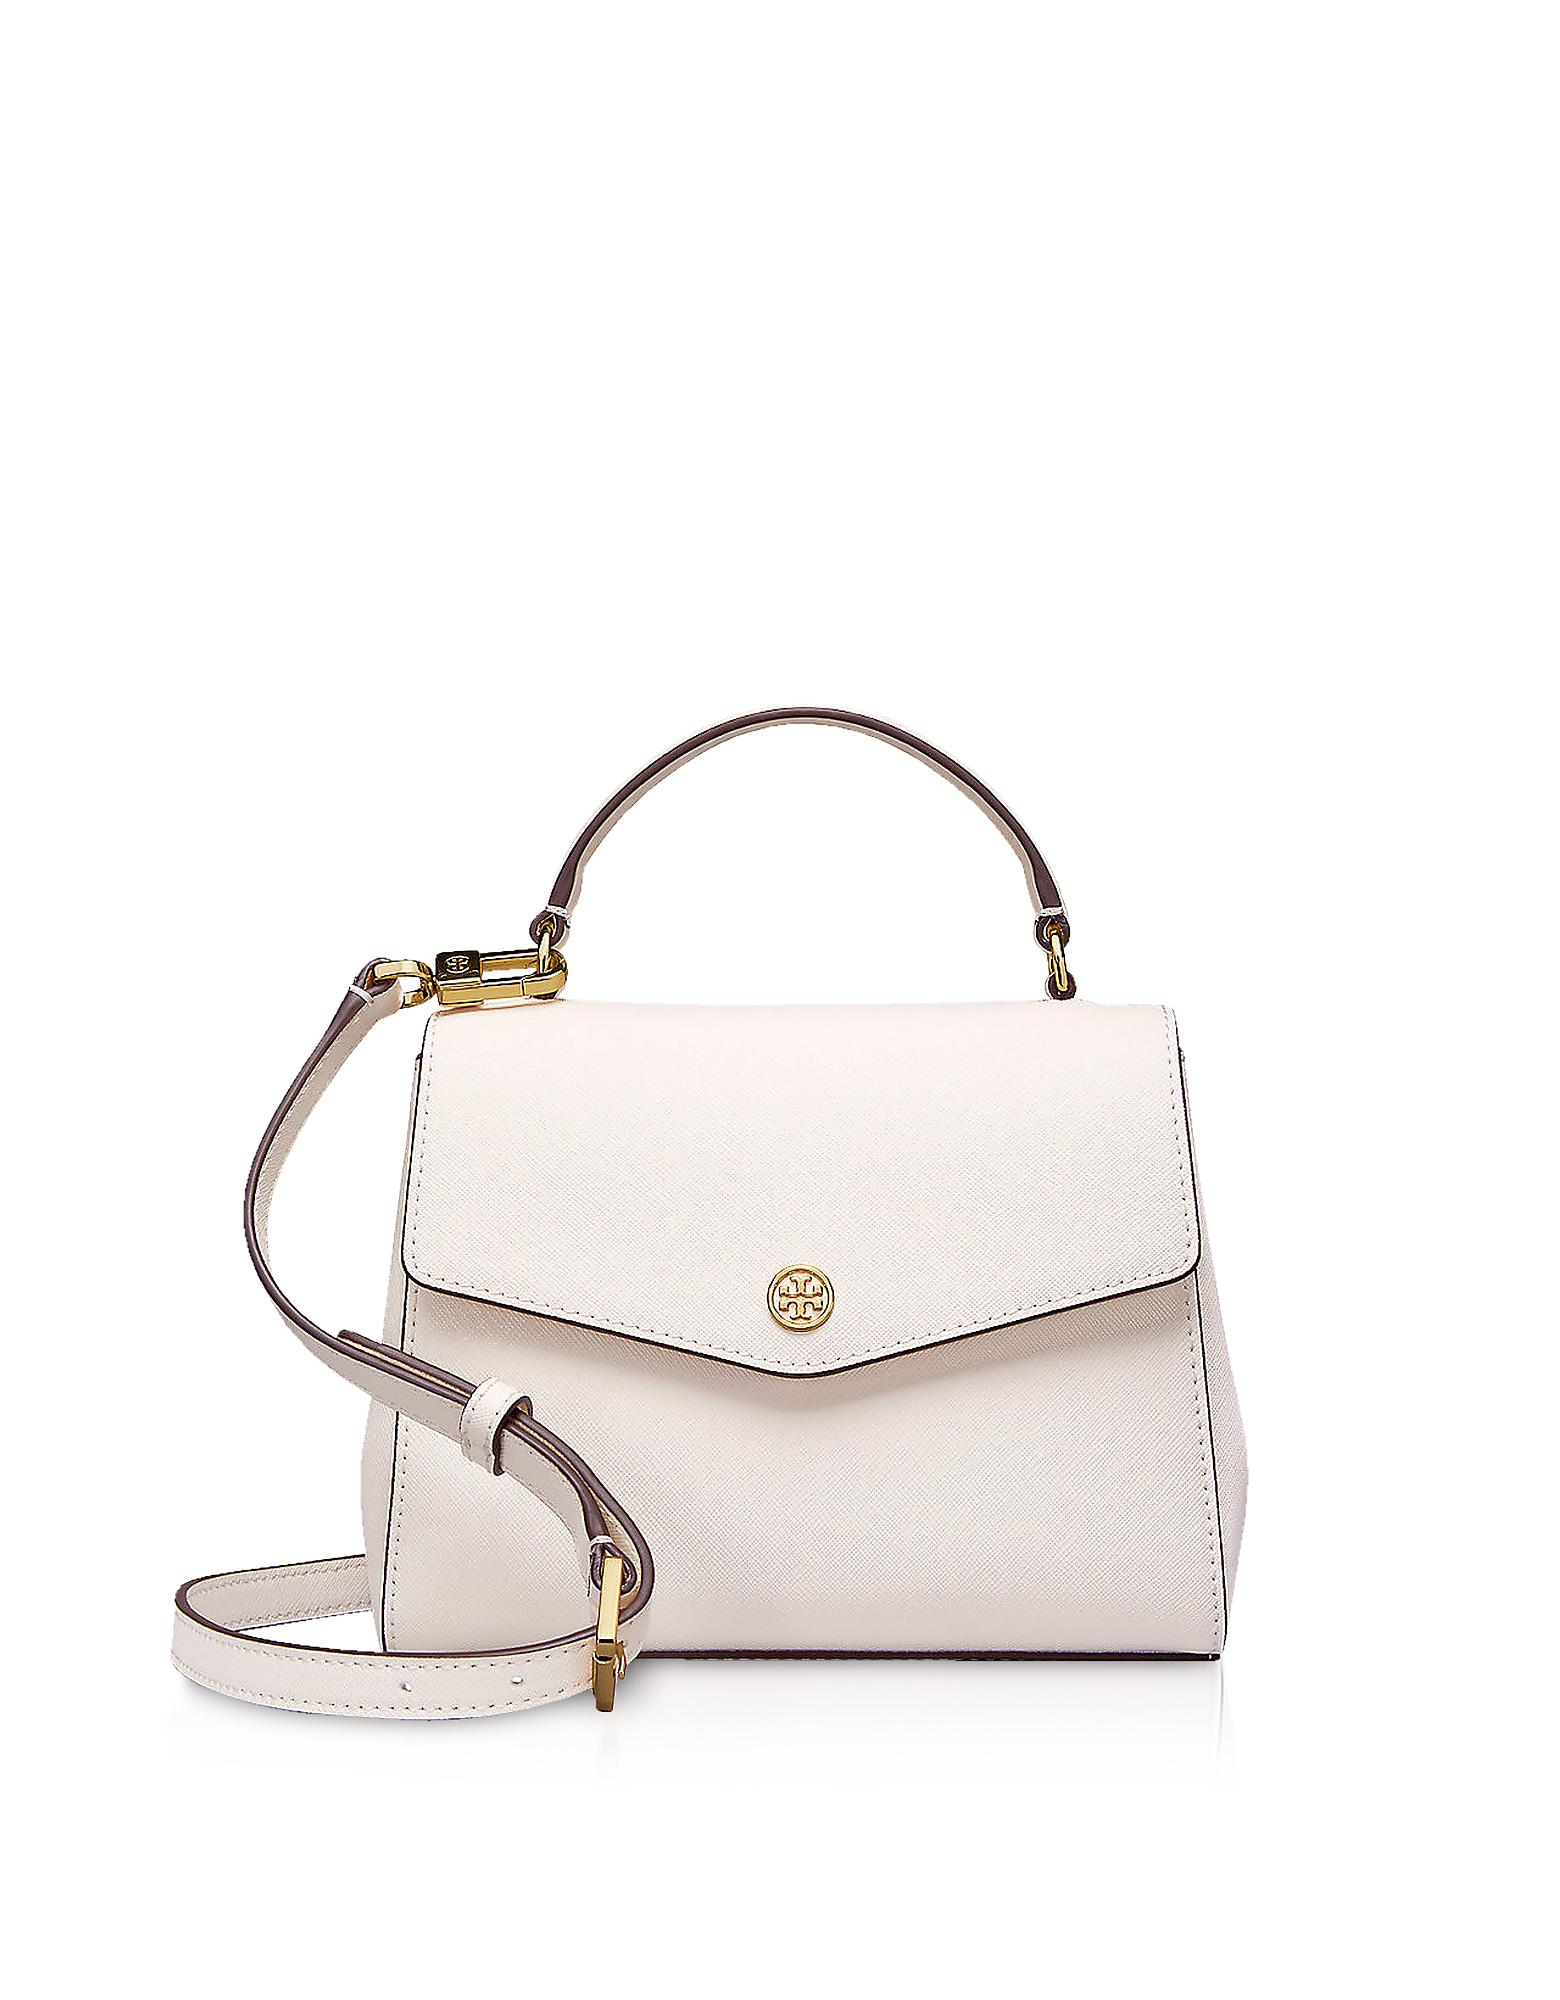 4e55edc951a3 Tory Burch Birch Leather Robinson Small Top-handle Satchel Bag in ...